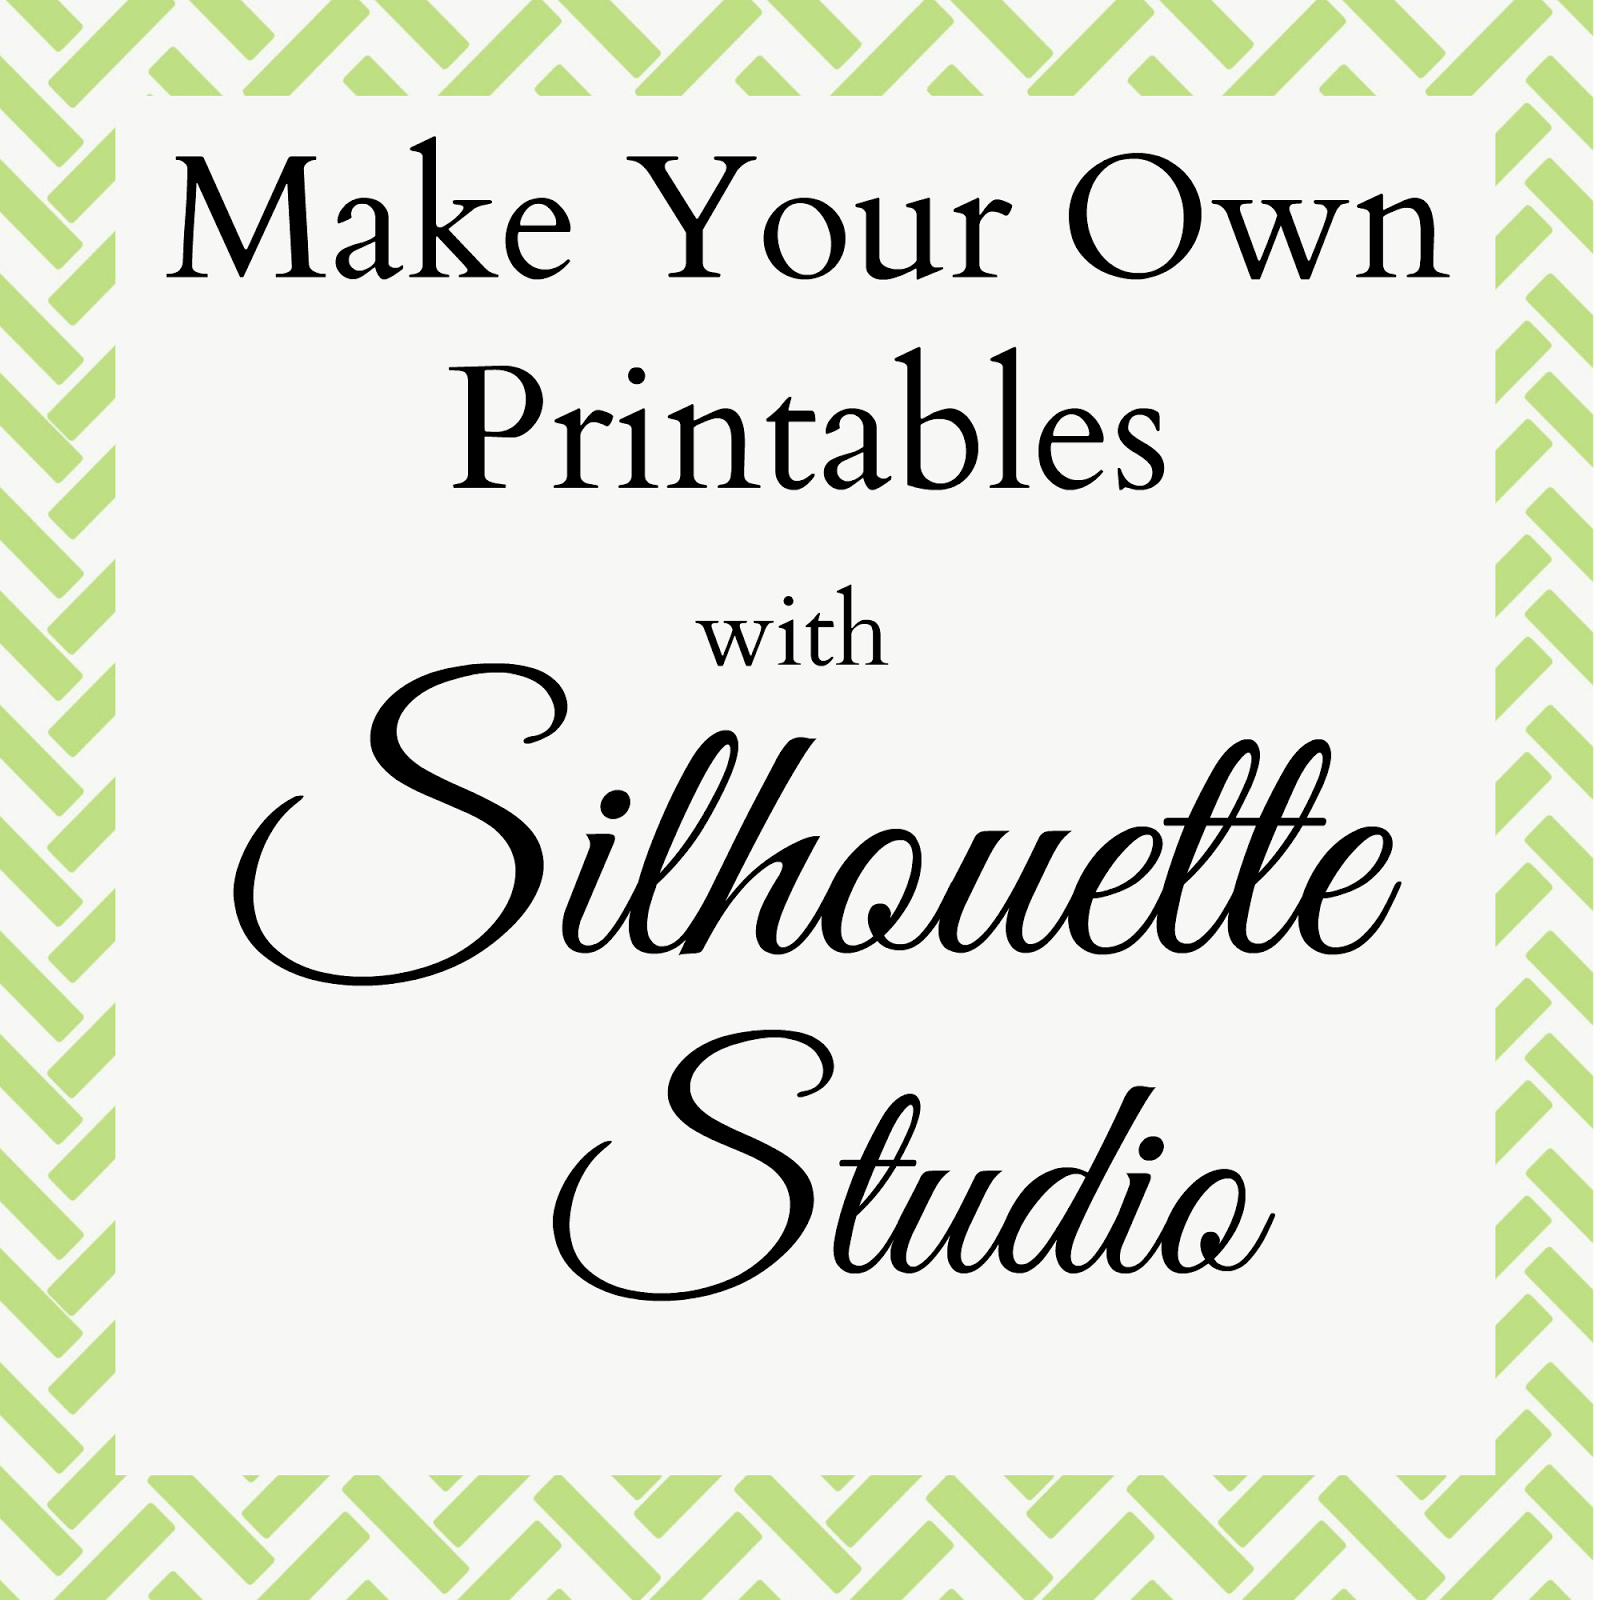 http://4.bp.blogspot.com/-_QkRe5zdLZ0/UysN_z8kbKI/AAAAAAAAFt0/4UIgvdWGv4c/s1600/Make+Your+Own+Printables+with+Silhouette+Studio.png